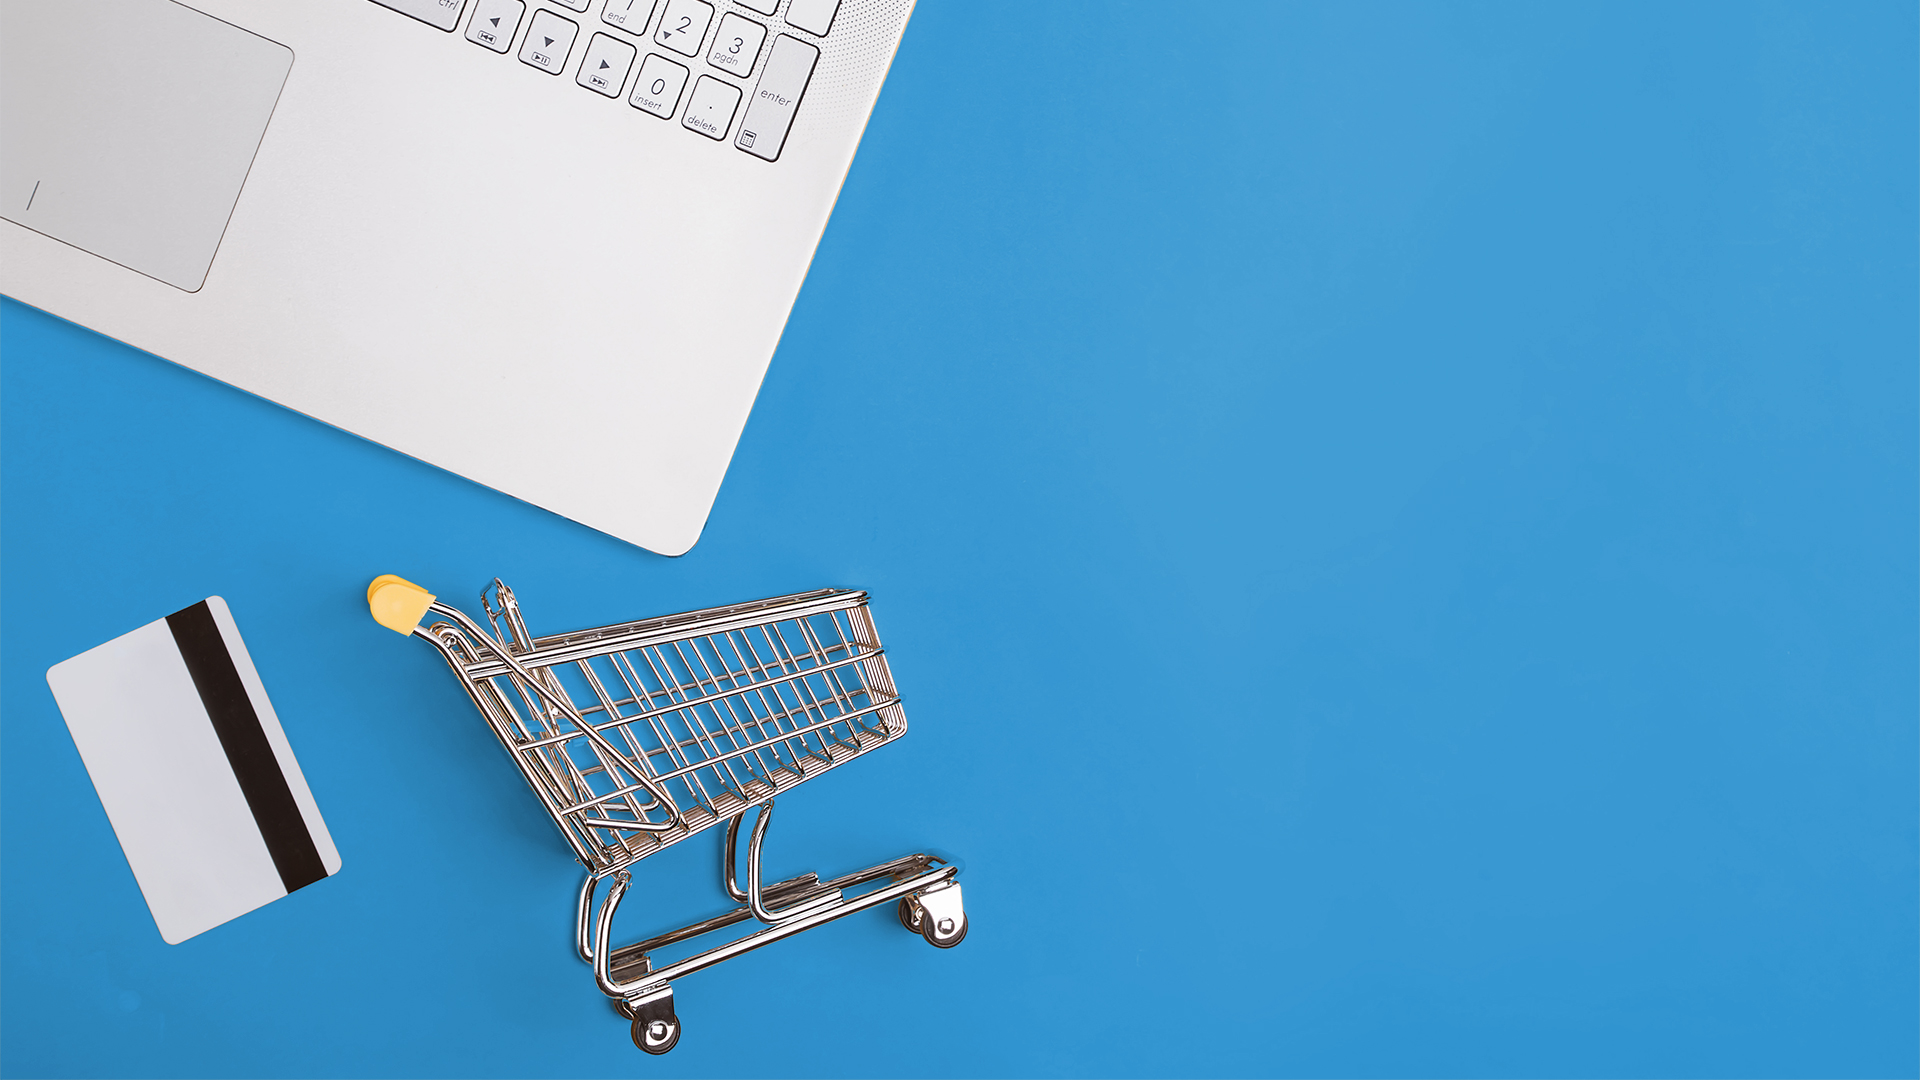 Some assets meant to symbolize the e-commerce industry are shown, including a credit card, a shopping cart, and a computer.